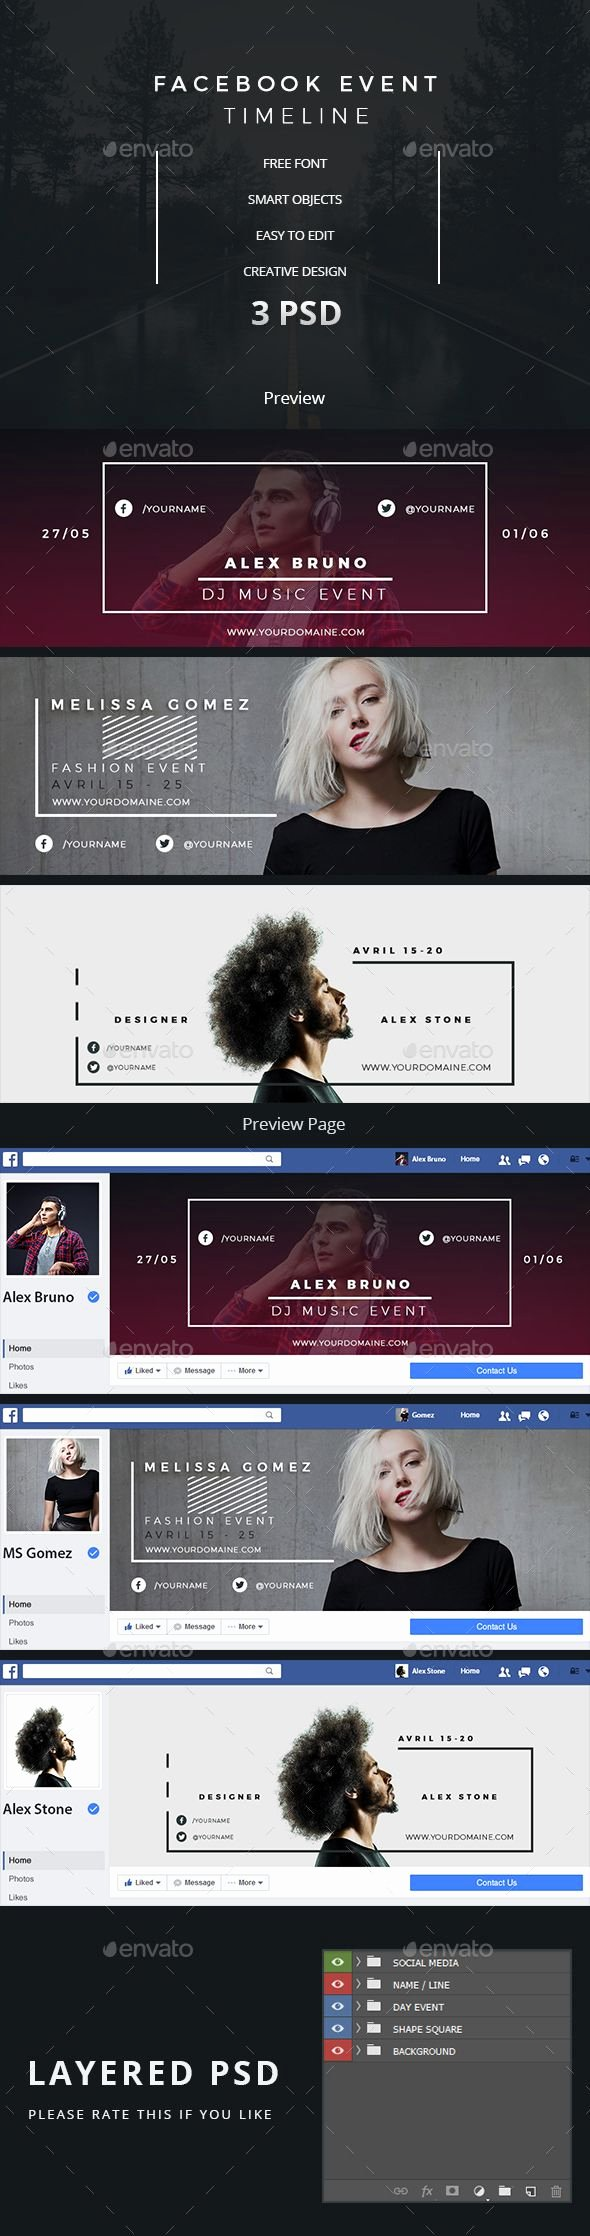 Facebook event Photo Template Unique Best 25 Dj Music Ideas On Pinterest